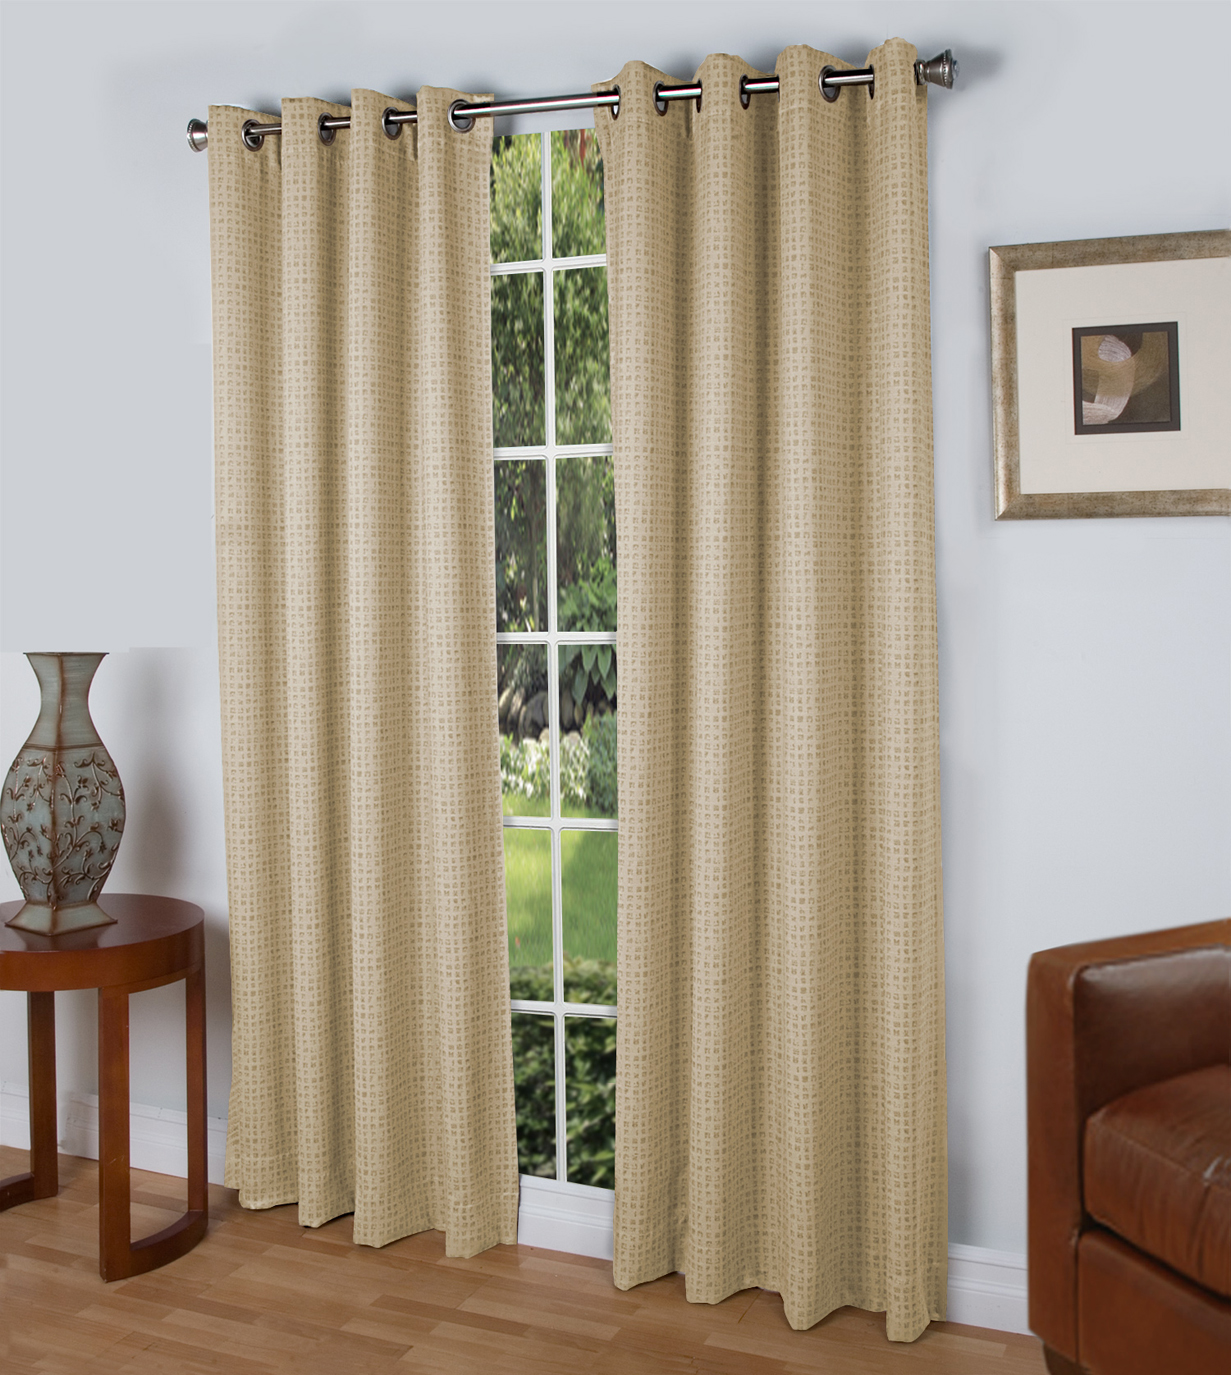 Curtains Meaning In Spanish Gopelling Net